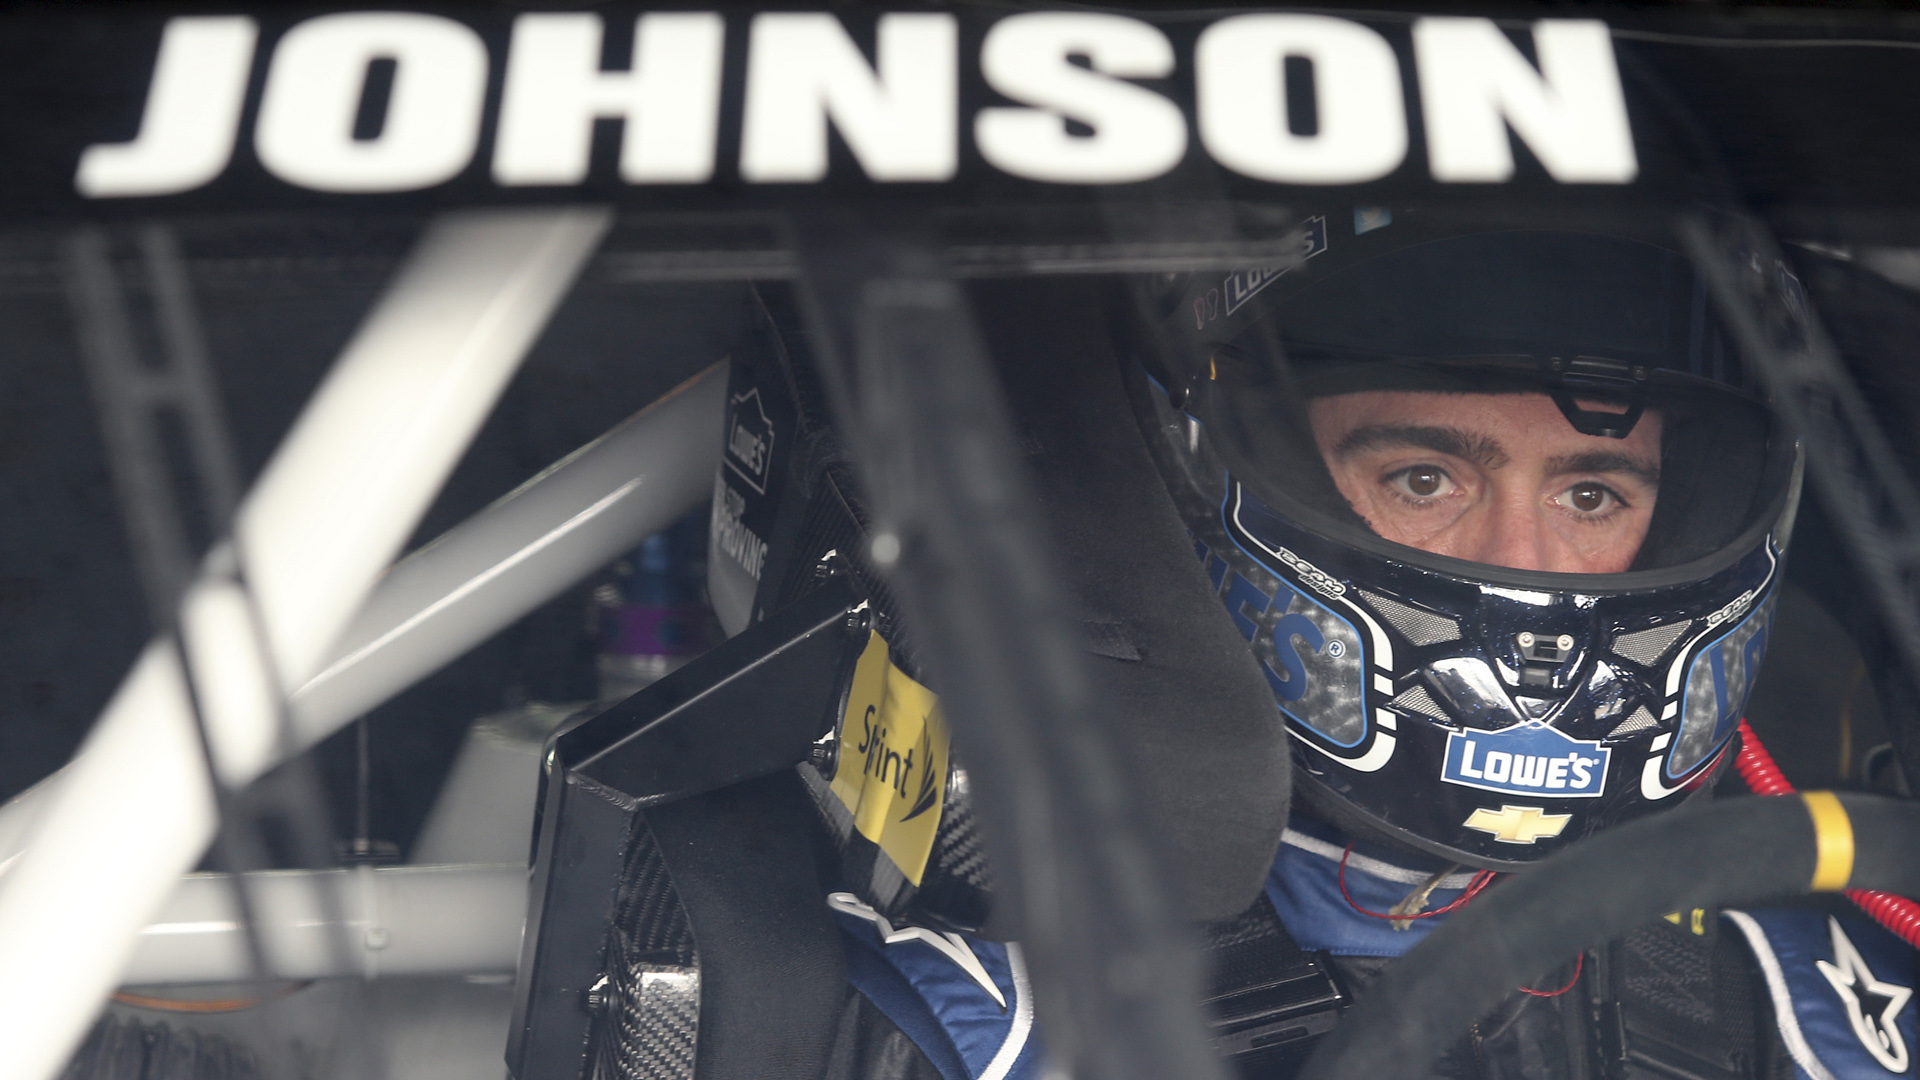 Jimmie Johnson-120513-AP-FTR.jpeg